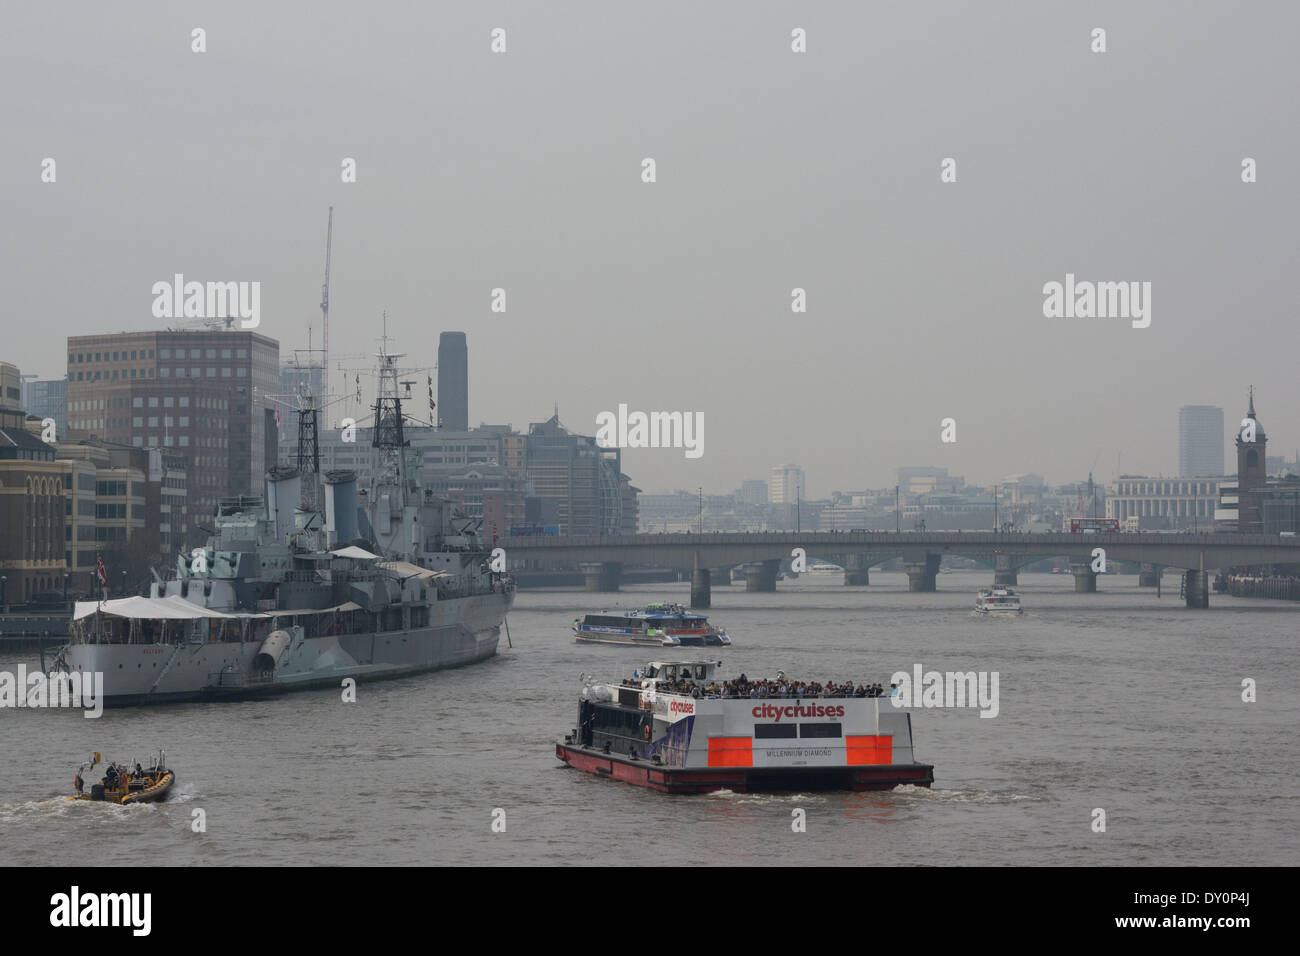 London, UK. 2nd April 2014. Beyond HMS Belfast, central London lies under a blanket of atmospheric haze as the Met Office forecasts severe smog in London this week due to a combination of air pollution, light south easterly winds and a Saharan storm which is depositing fine red dust into the atmosphere. Defra's Daily Air Quality Index advised those with poor health or lung conditions to avoid strenuous outdoor exercise, and asthma sufferers should make sure they have their inhaler to hand. Credit:  Patricia Phillips/Alamy Live News - Stock Image